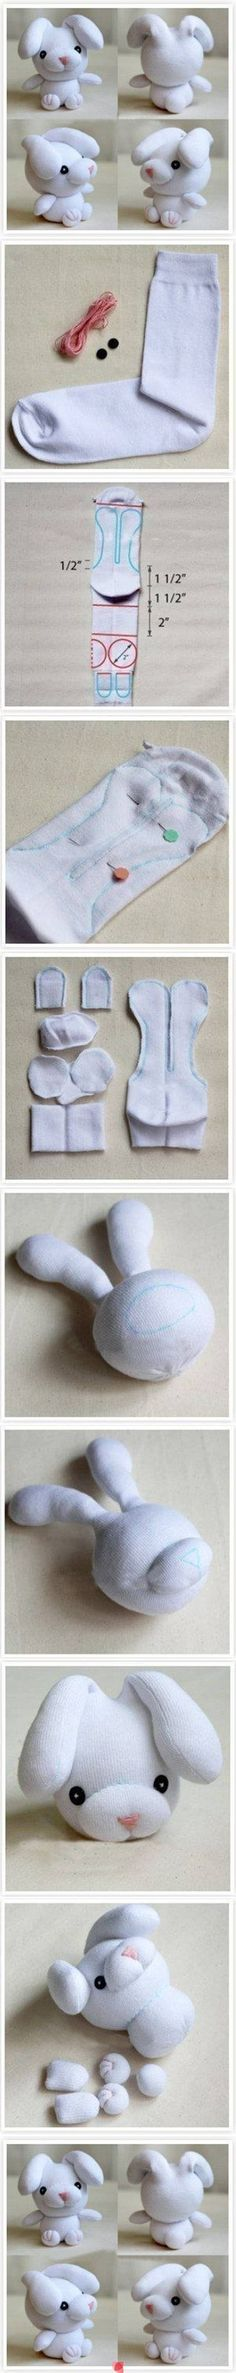 Oh, so cute. White sock toys.